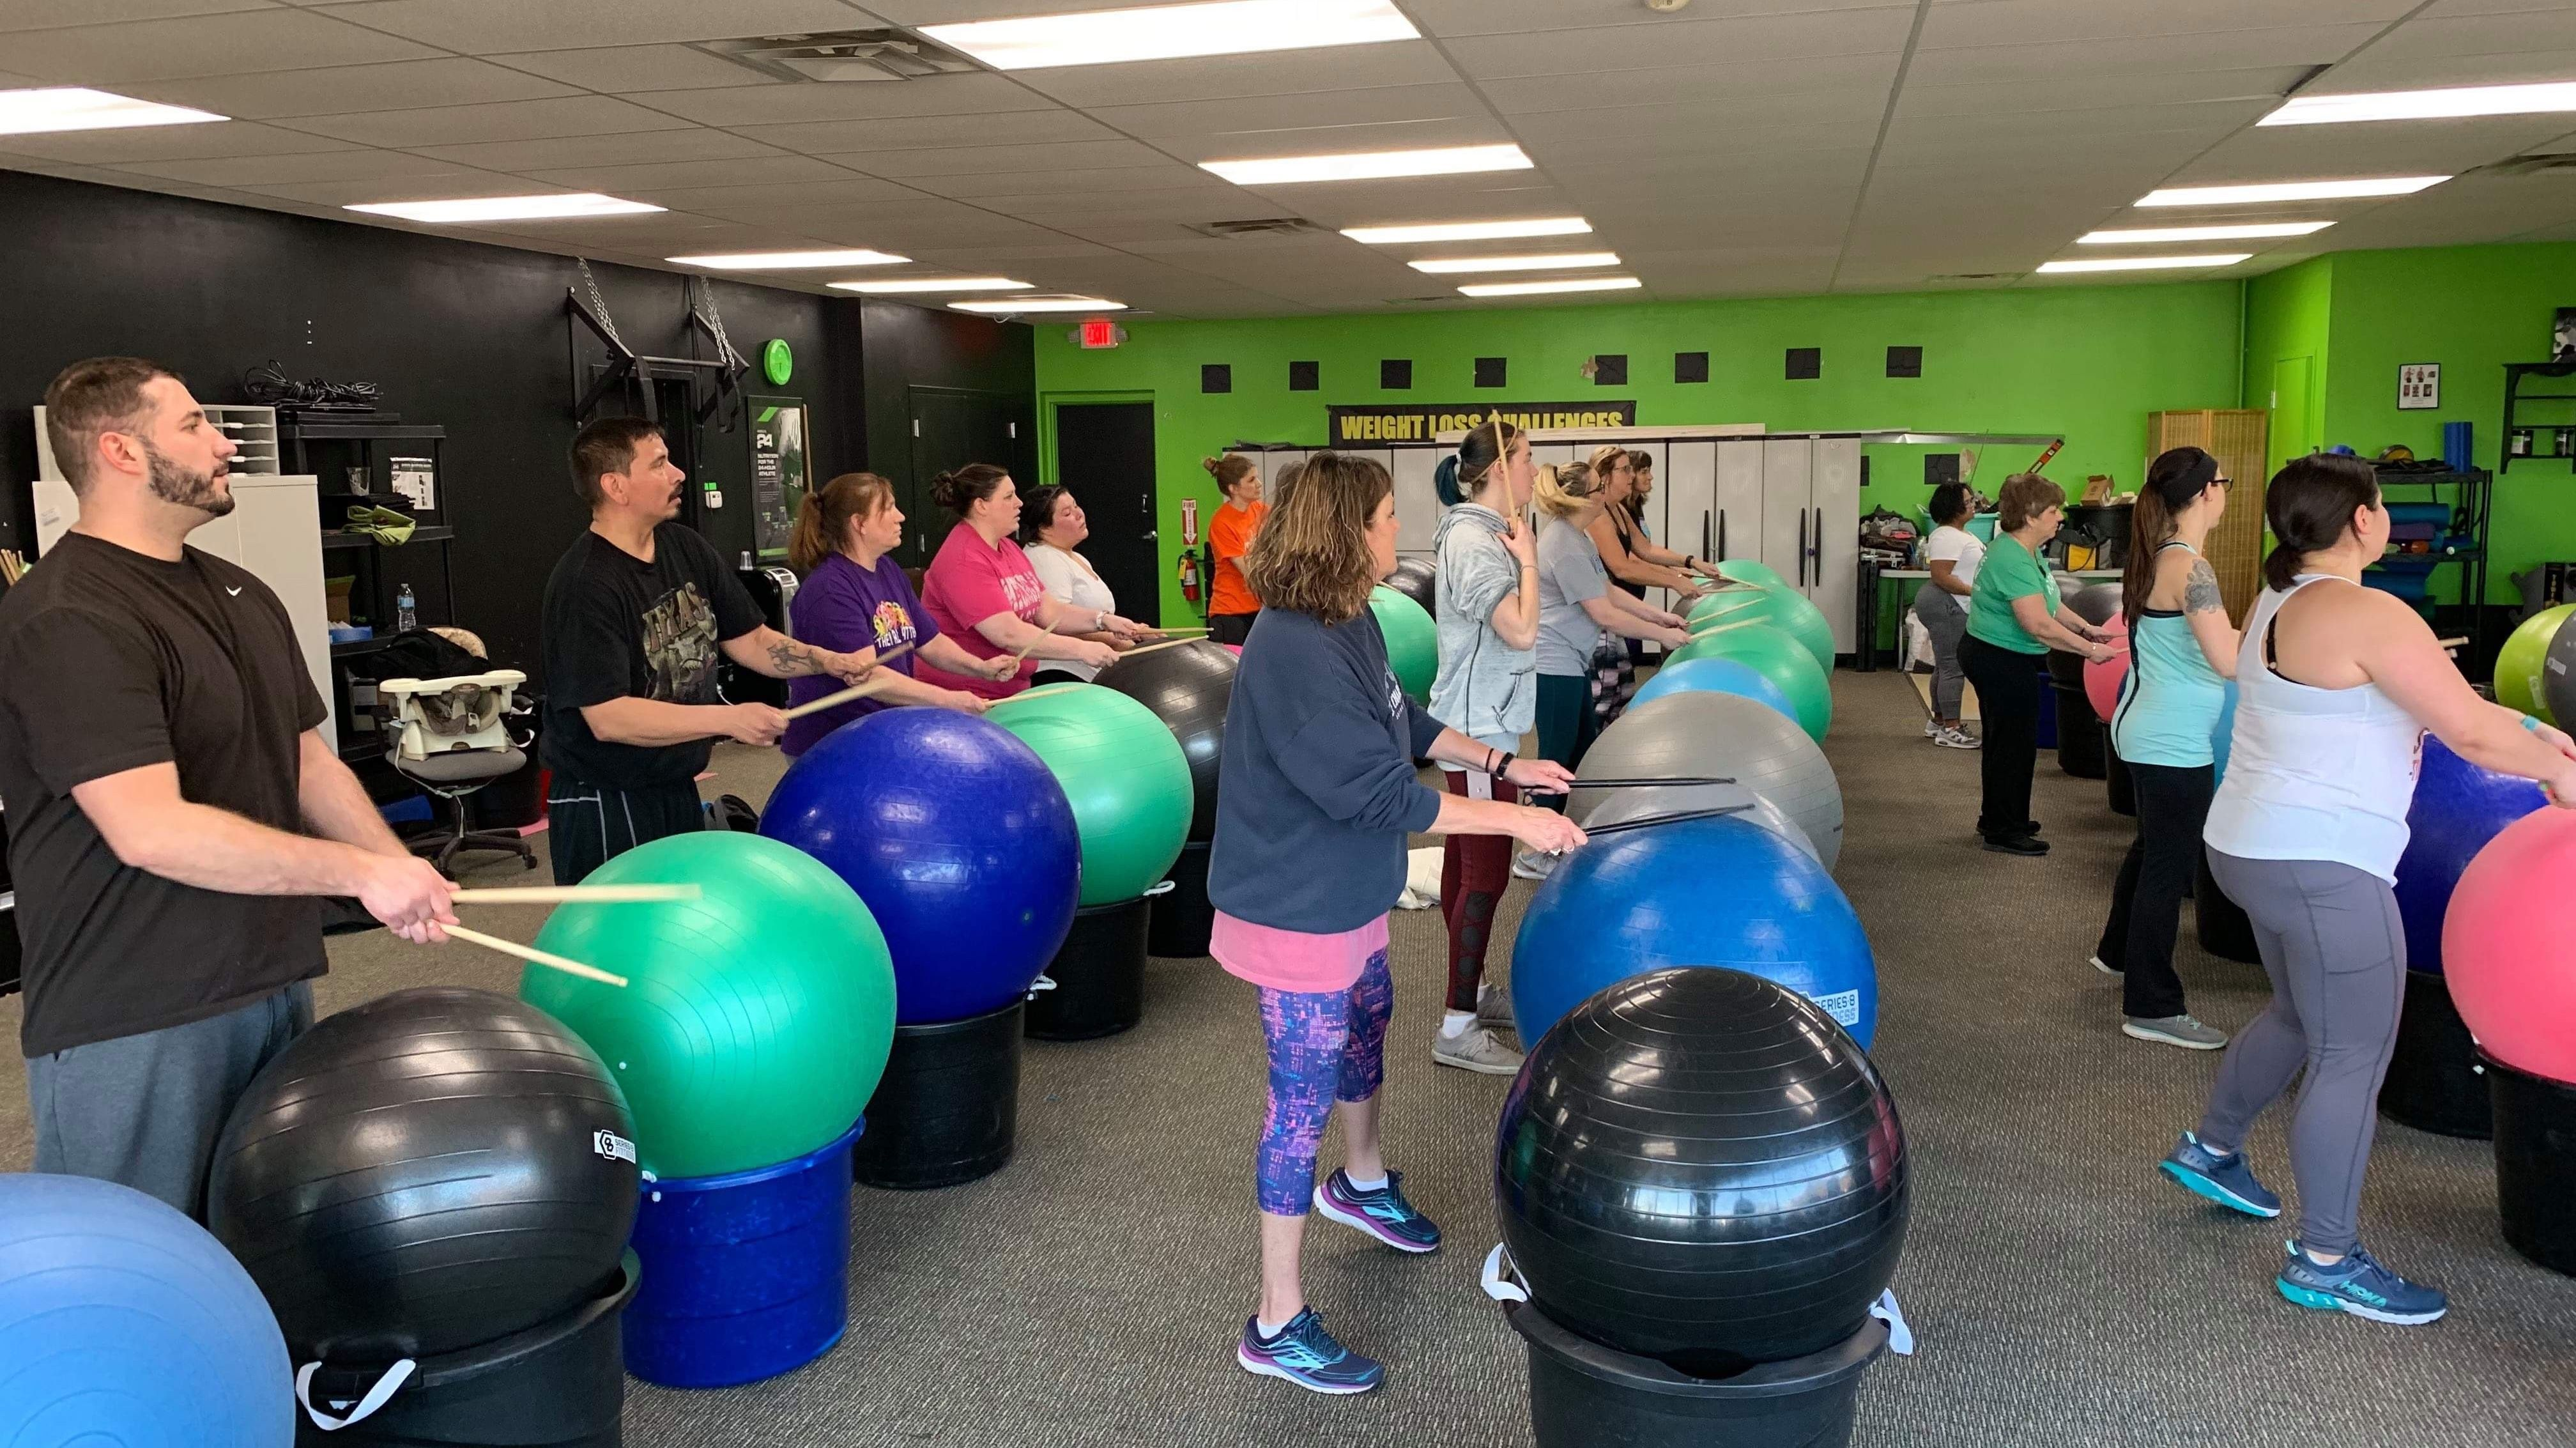 Kentwood/Grand Rapids Healthy Active Lifestyles Meetup